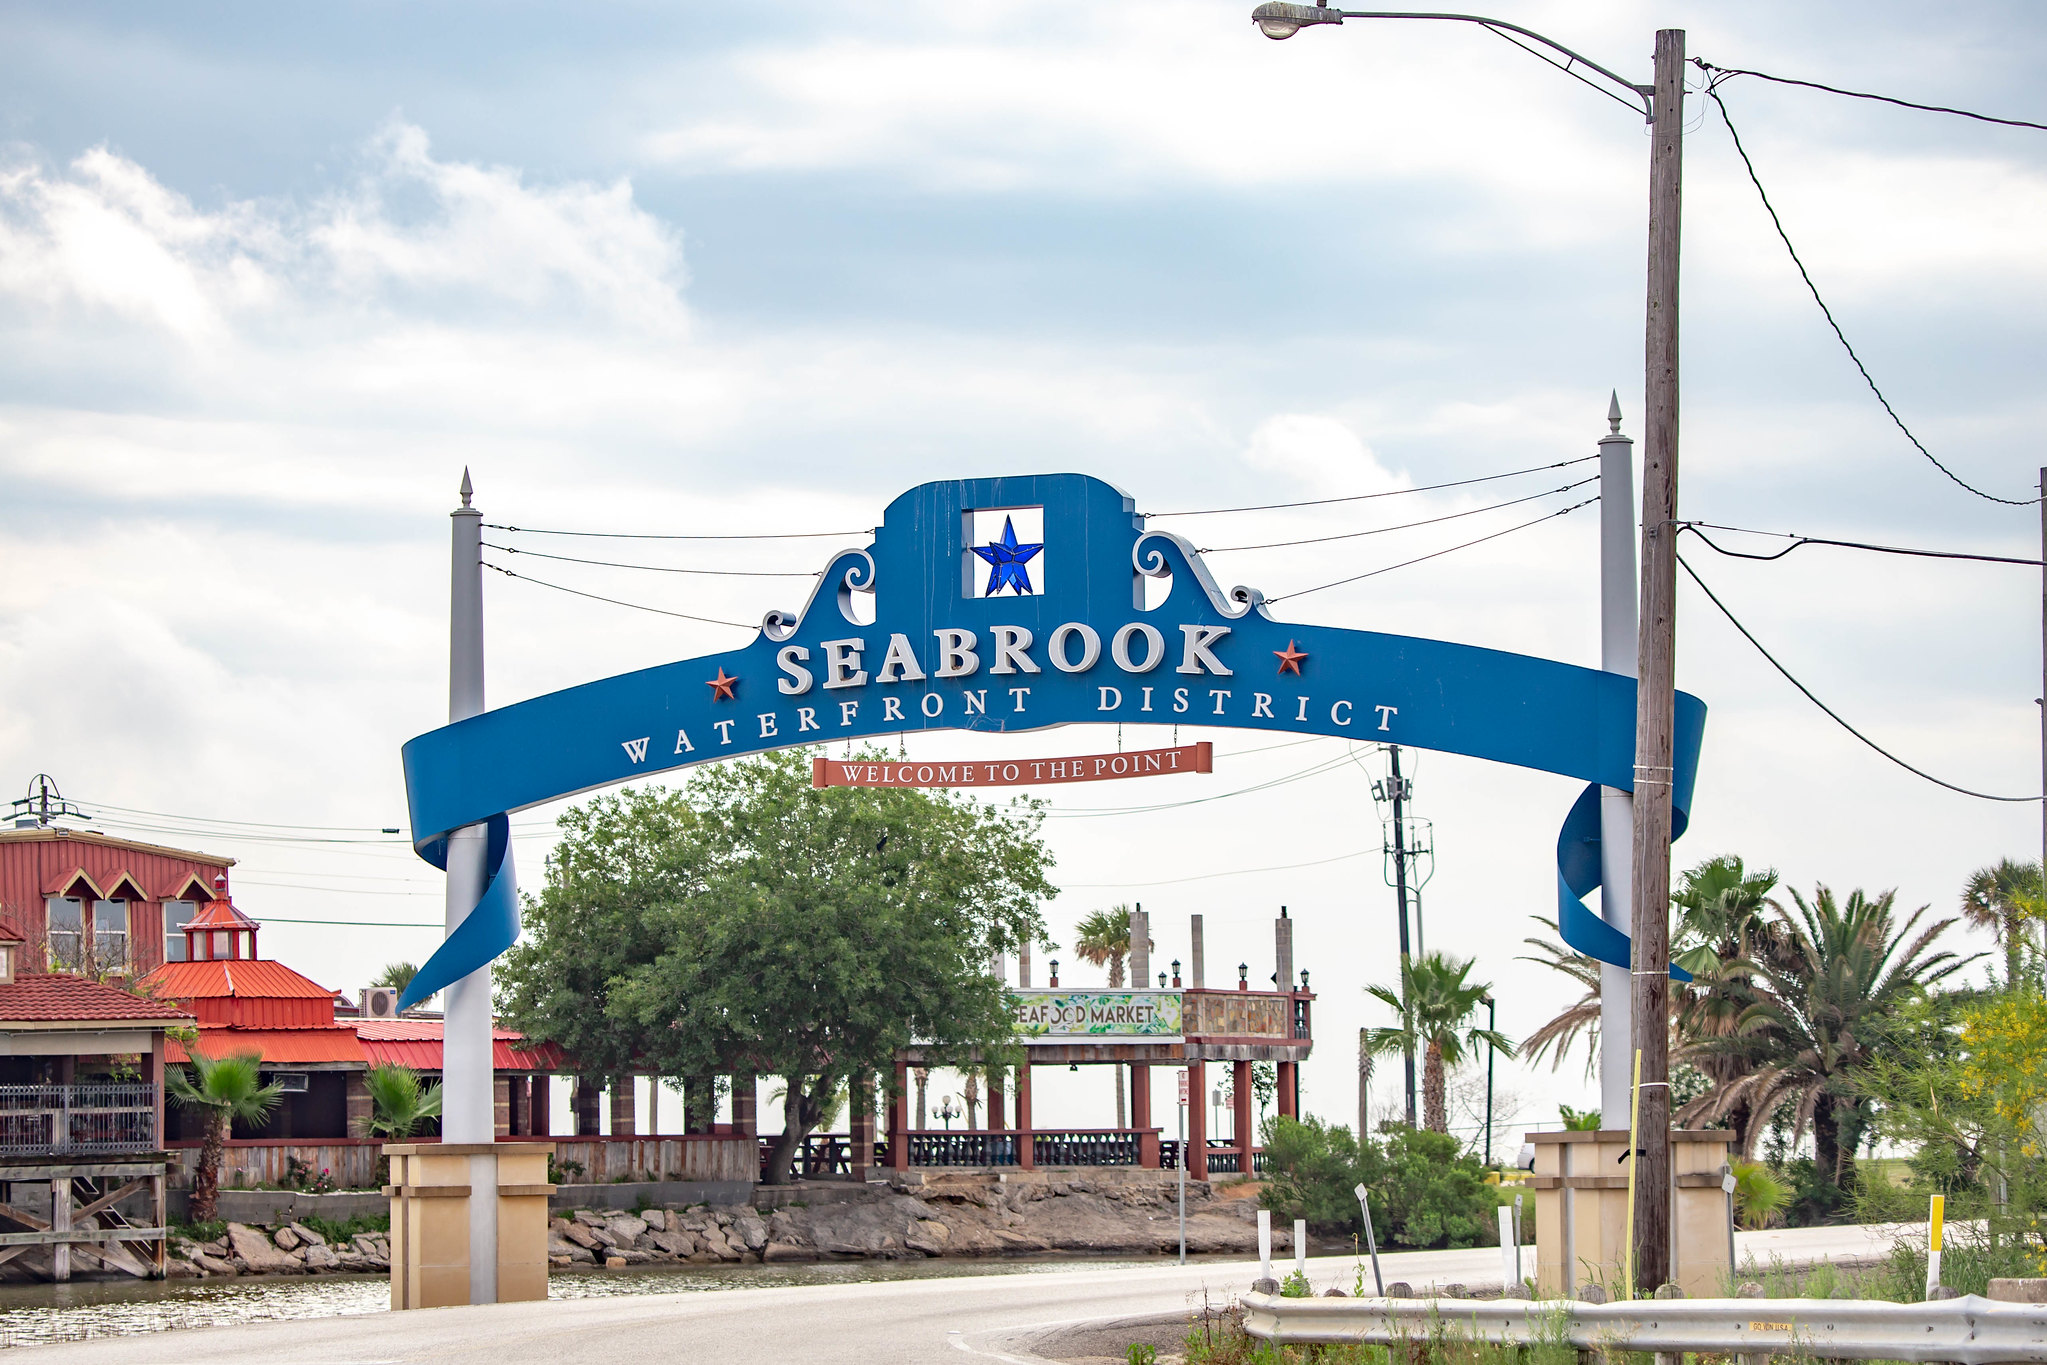 Seabrook Waterfront